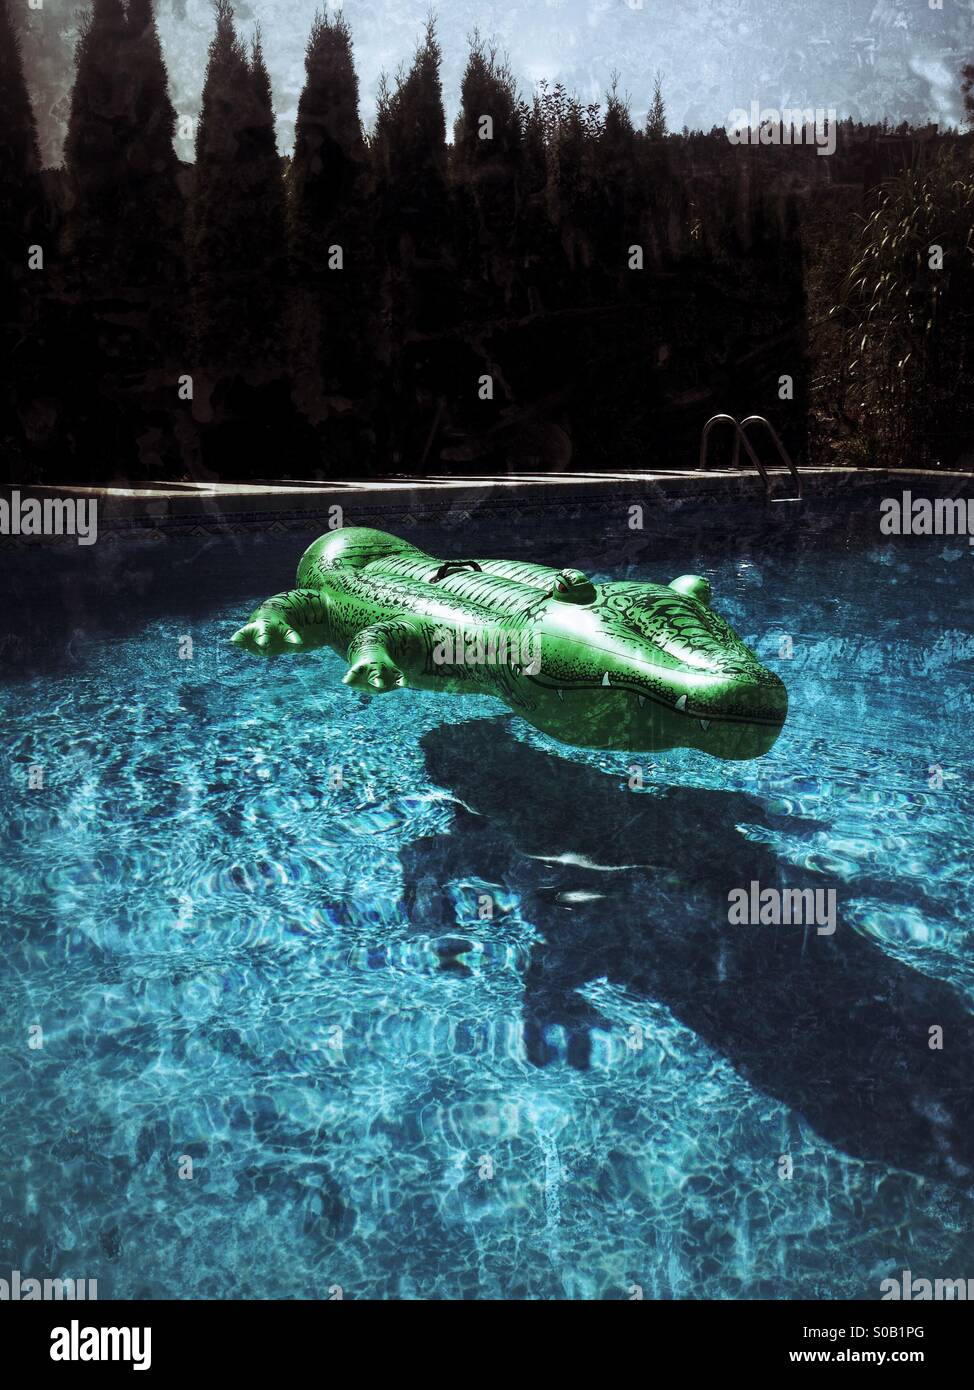 inflatable alligator pool toy floating in backyard swimming pool